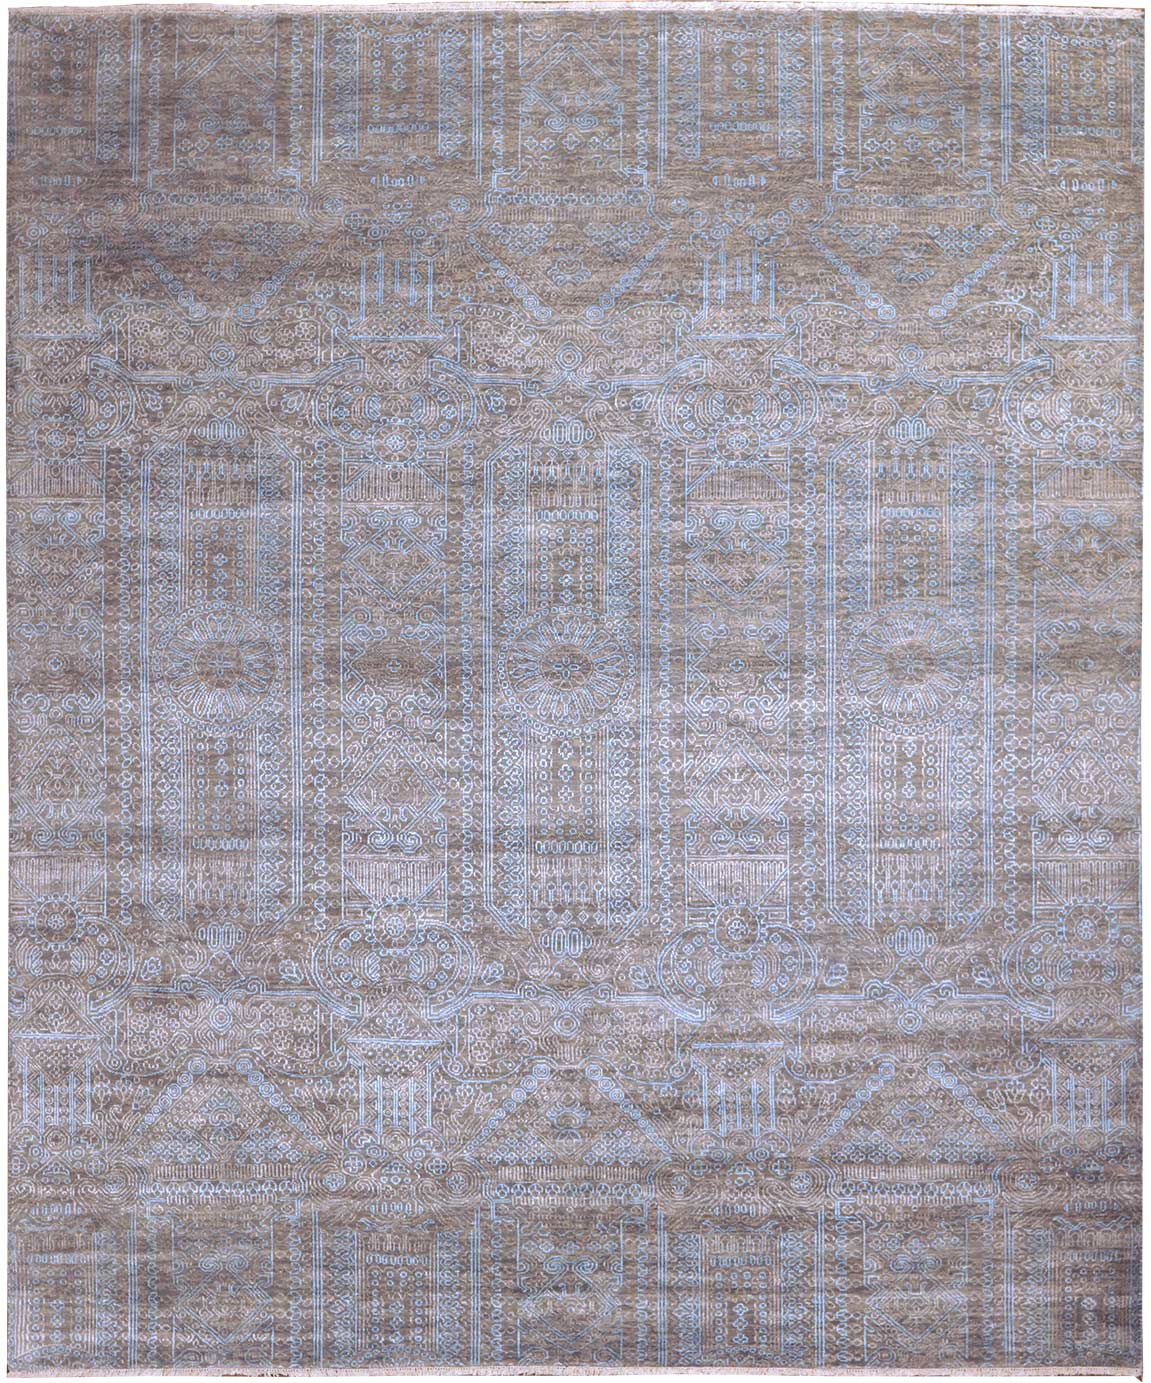 Home-Area Rugs-Transitional Area Rugs-55656 MODERN